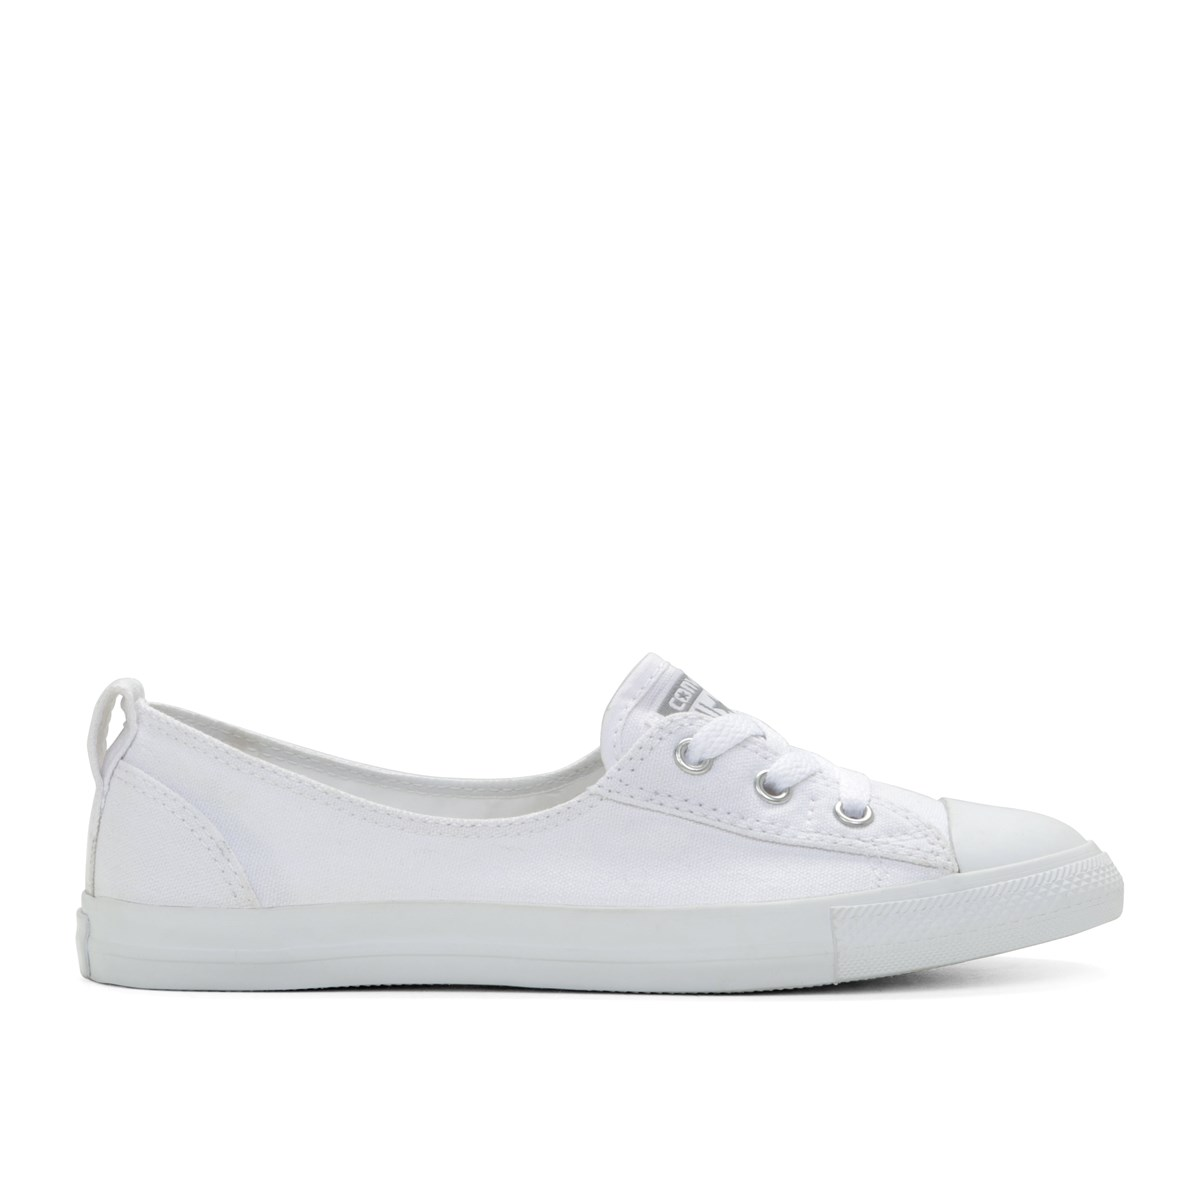 e698300bde89 Women s Chuck Taylor All Star Ballet Slip-On Sneaker. Previous. default  view ...